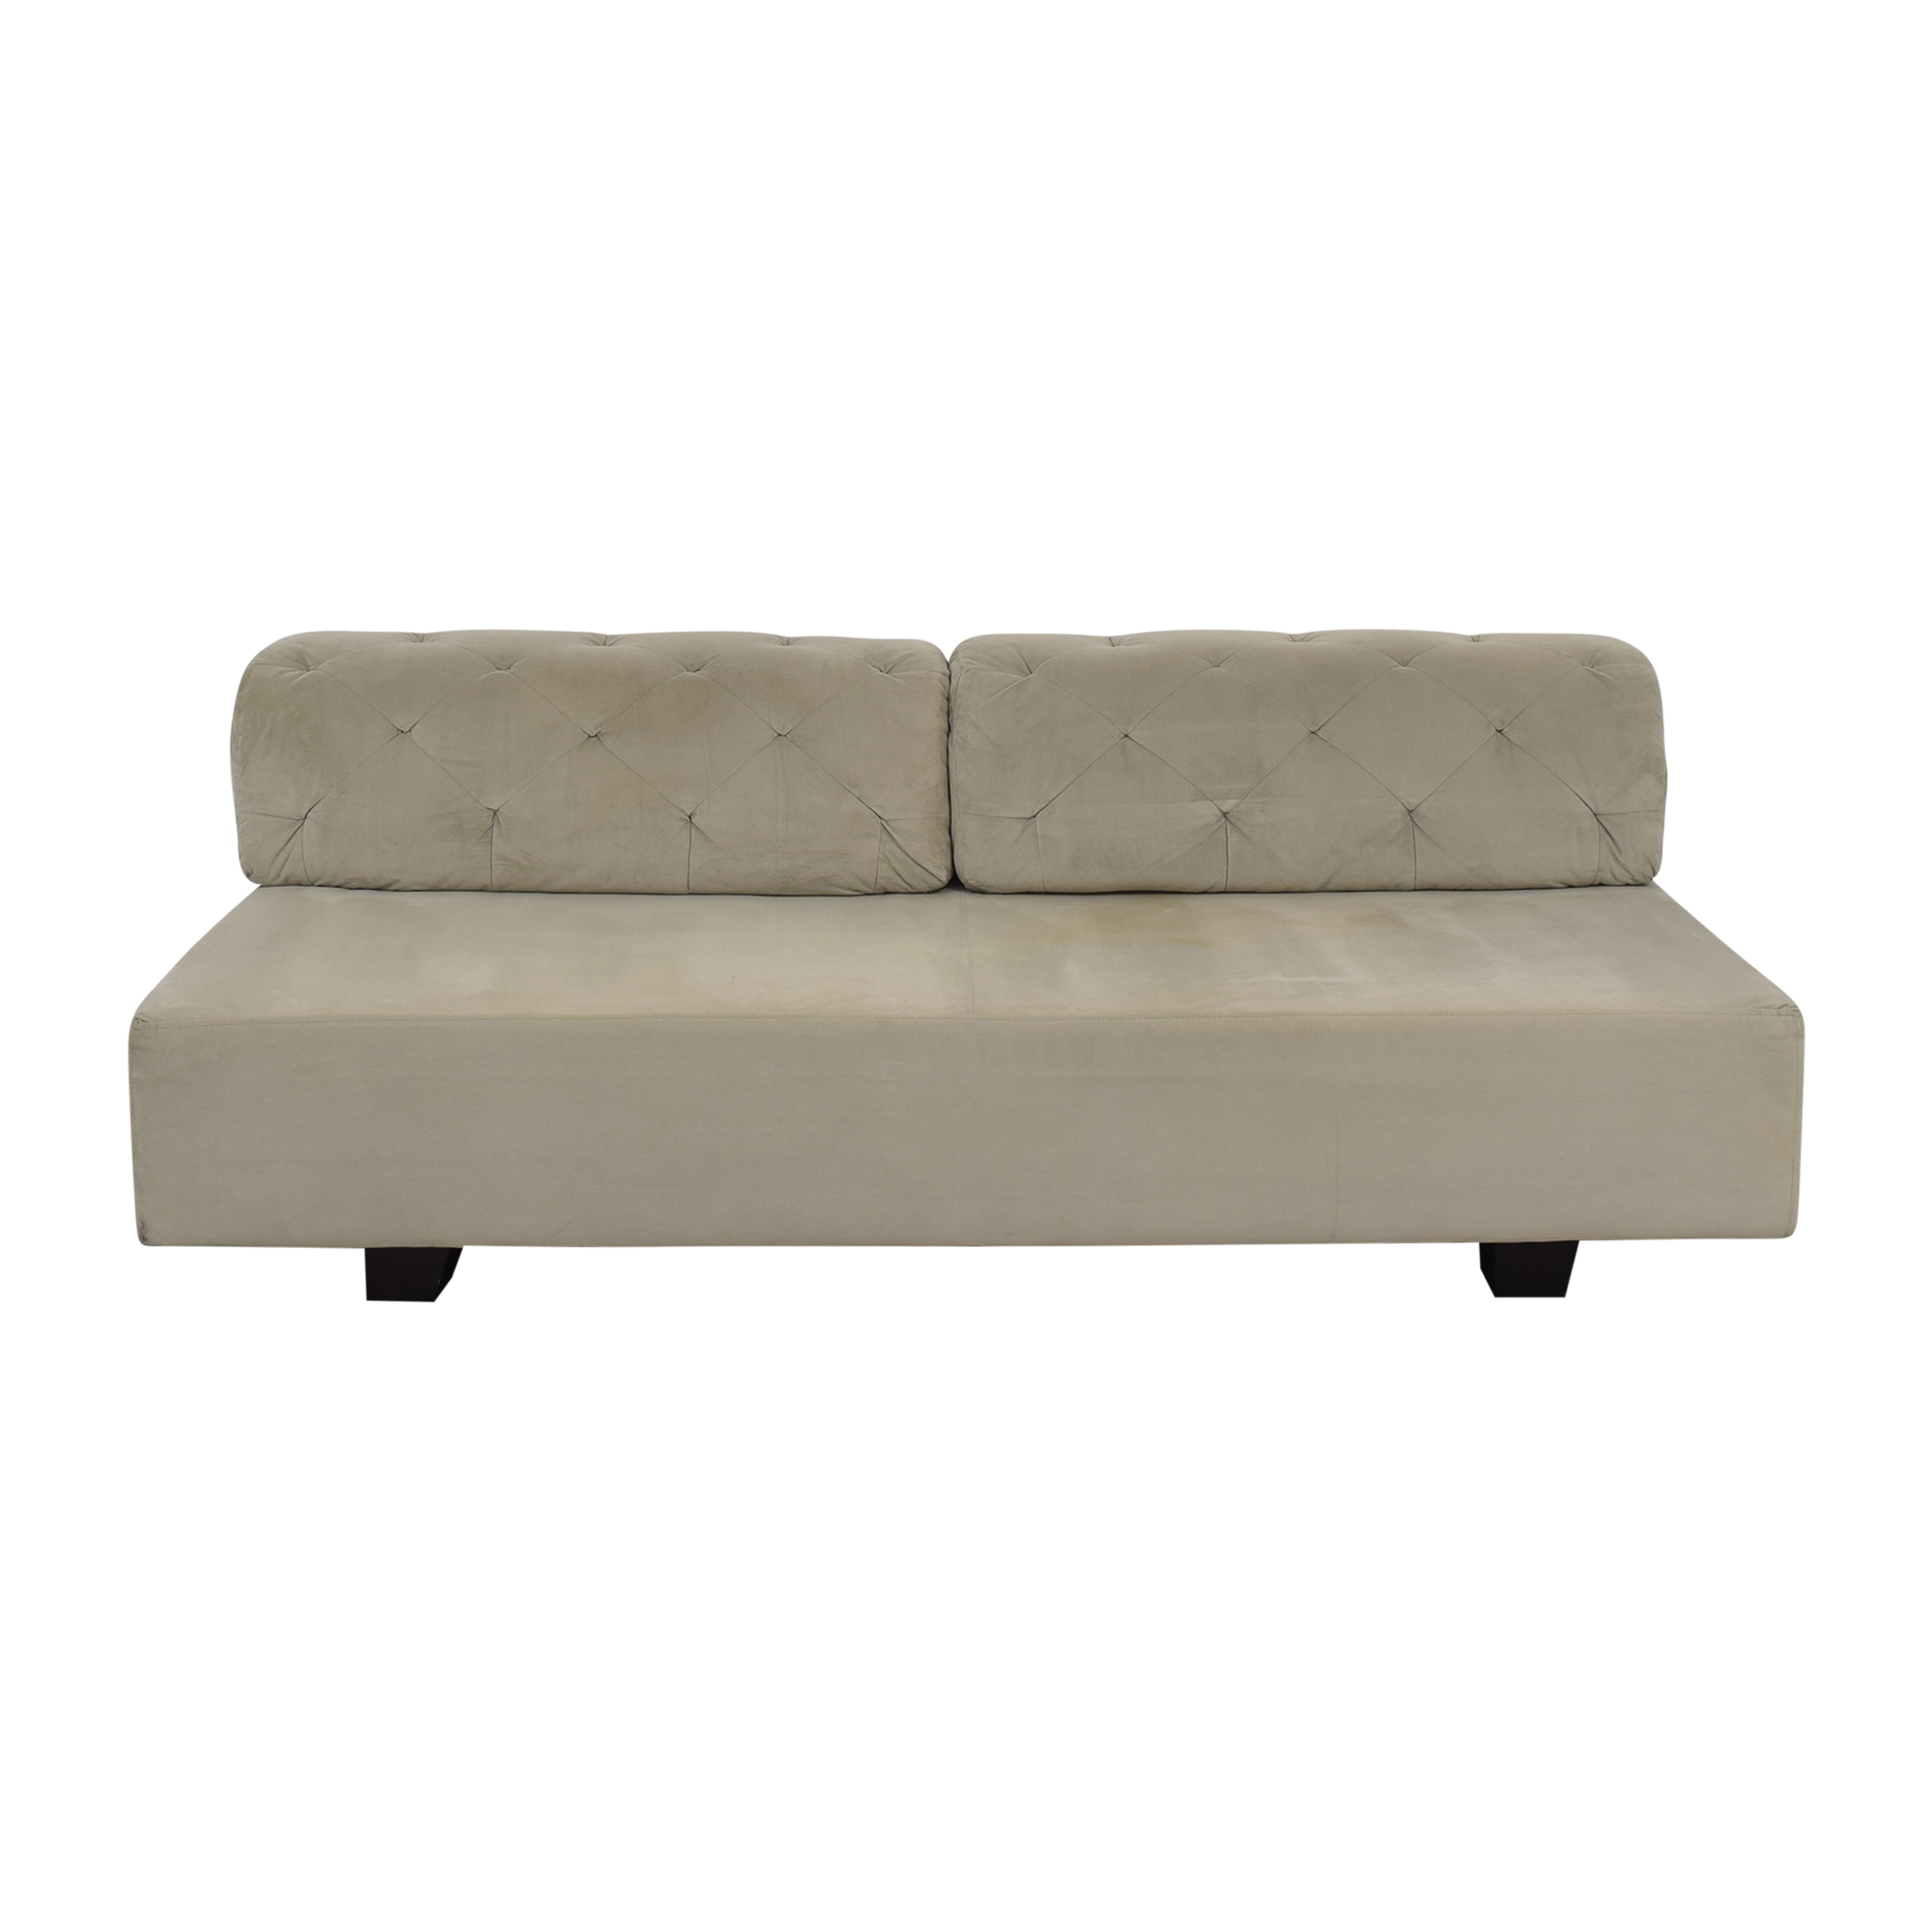 West Elm Tufted Tillary Sofa / Sectionals